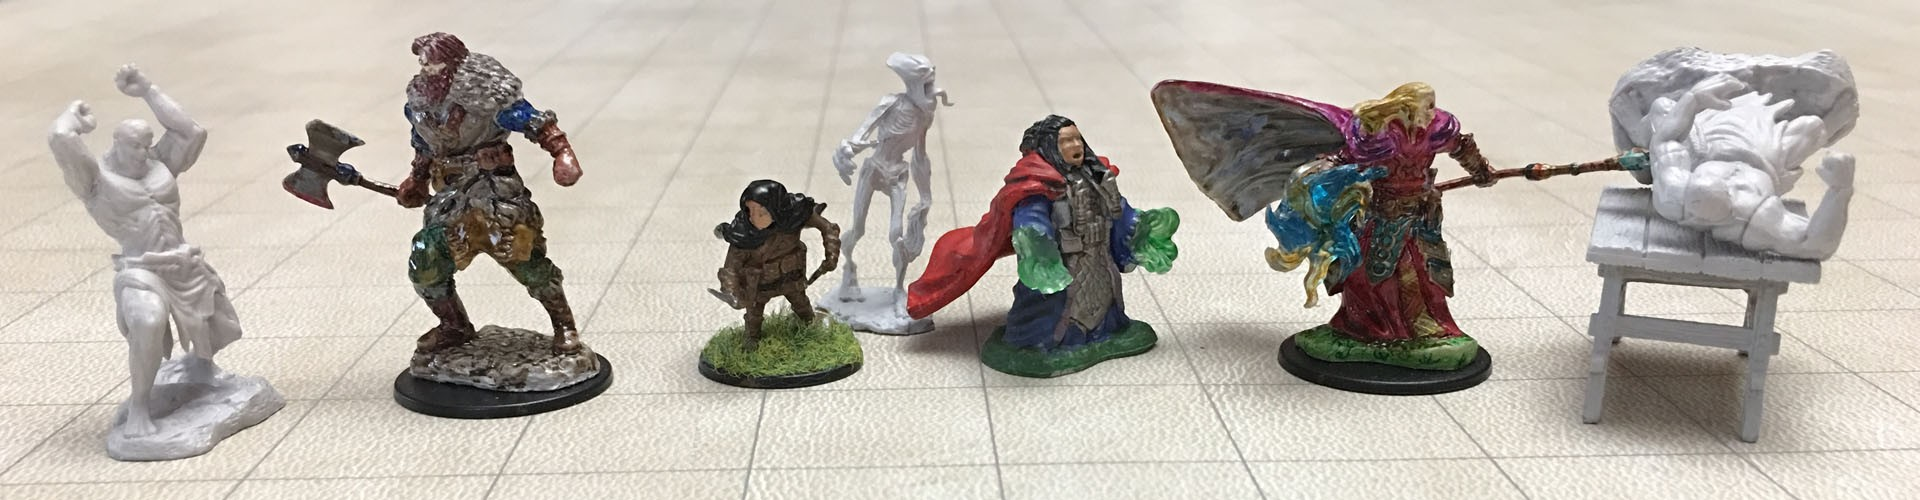 D&D Diary – Lost Mine of Phandelver – Session 8 – Family